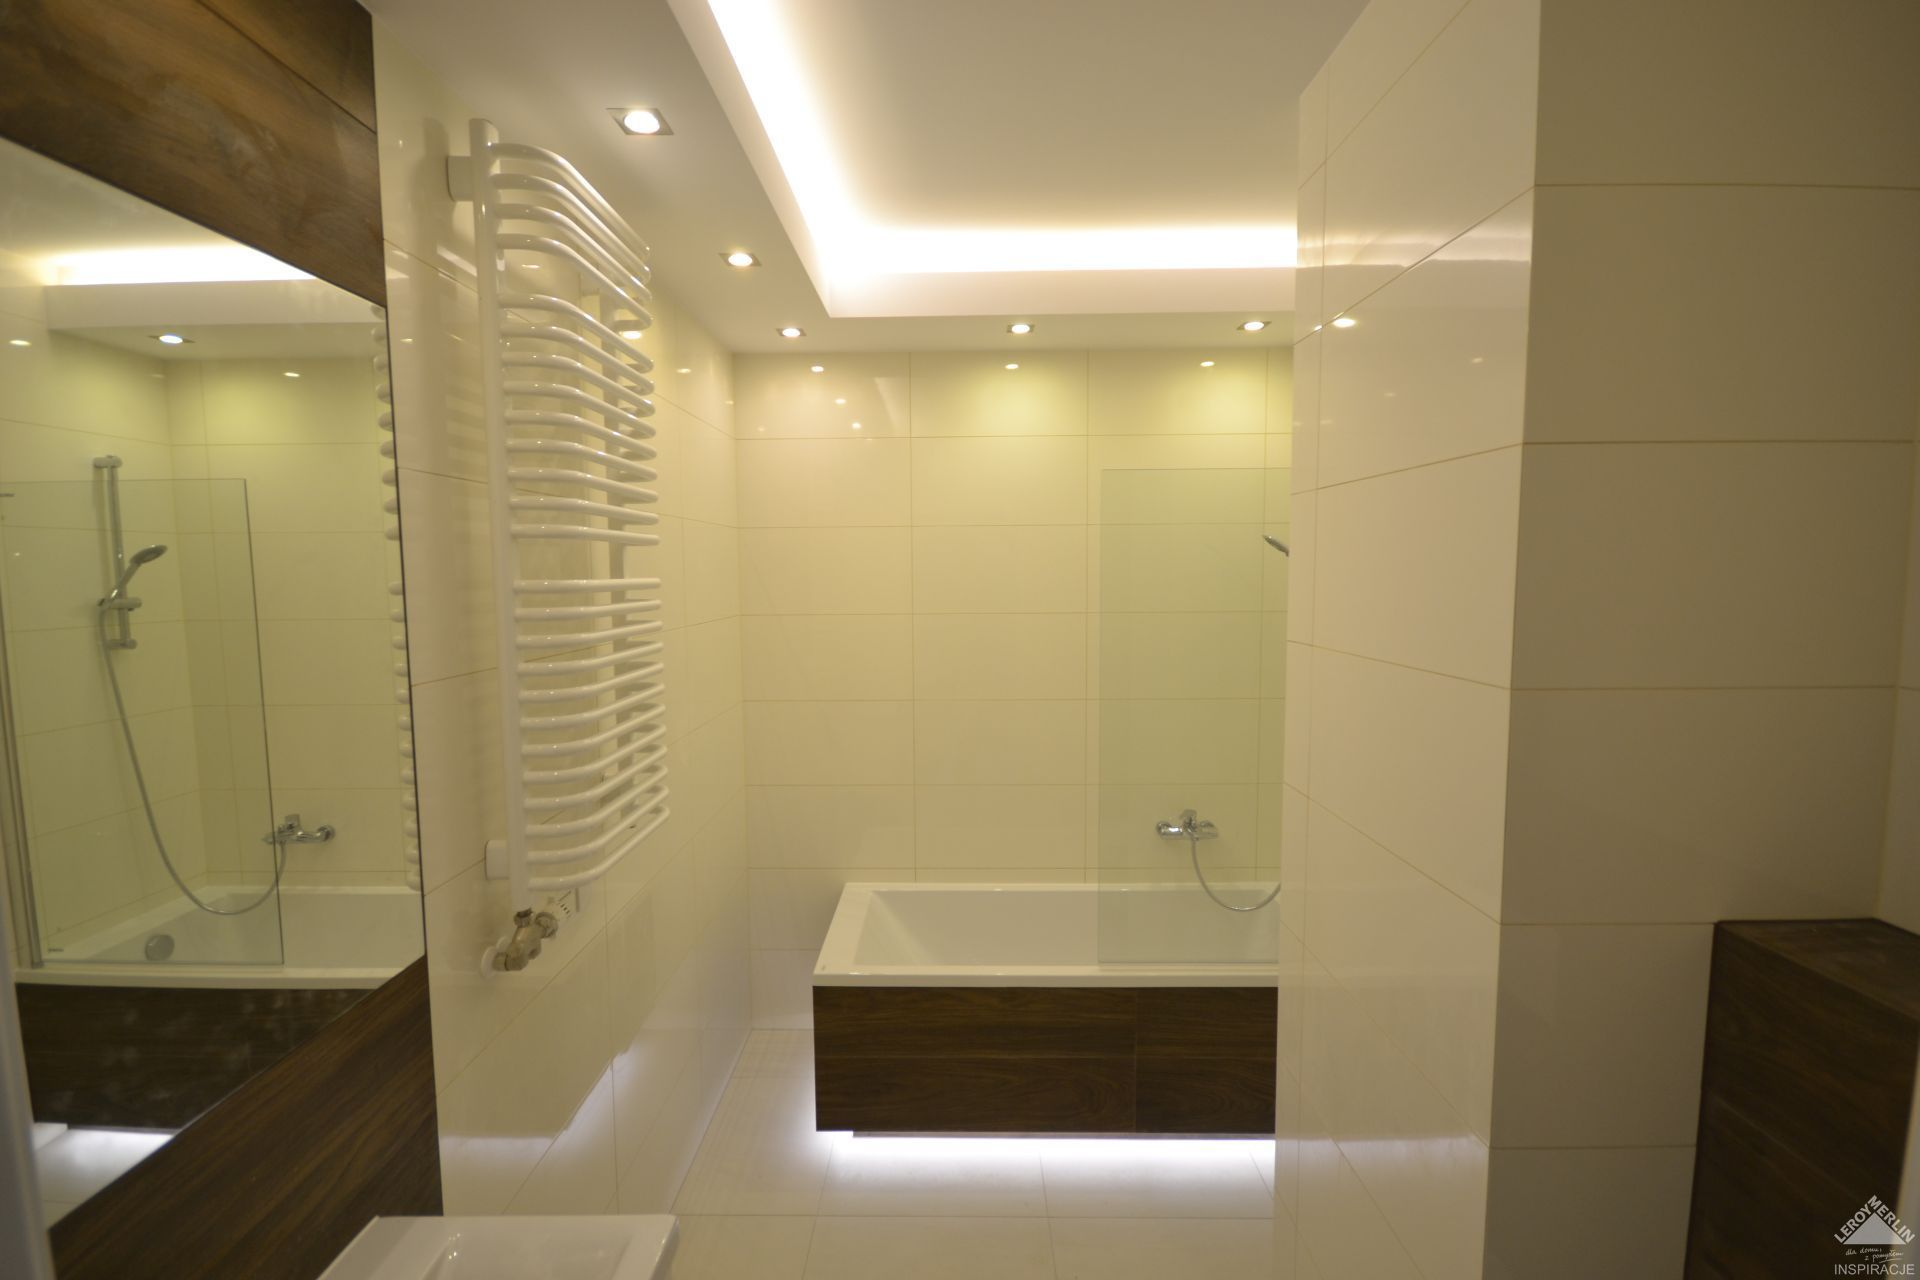 Led Light Bathroom łazienka Z Ledami Led Light Bathroom